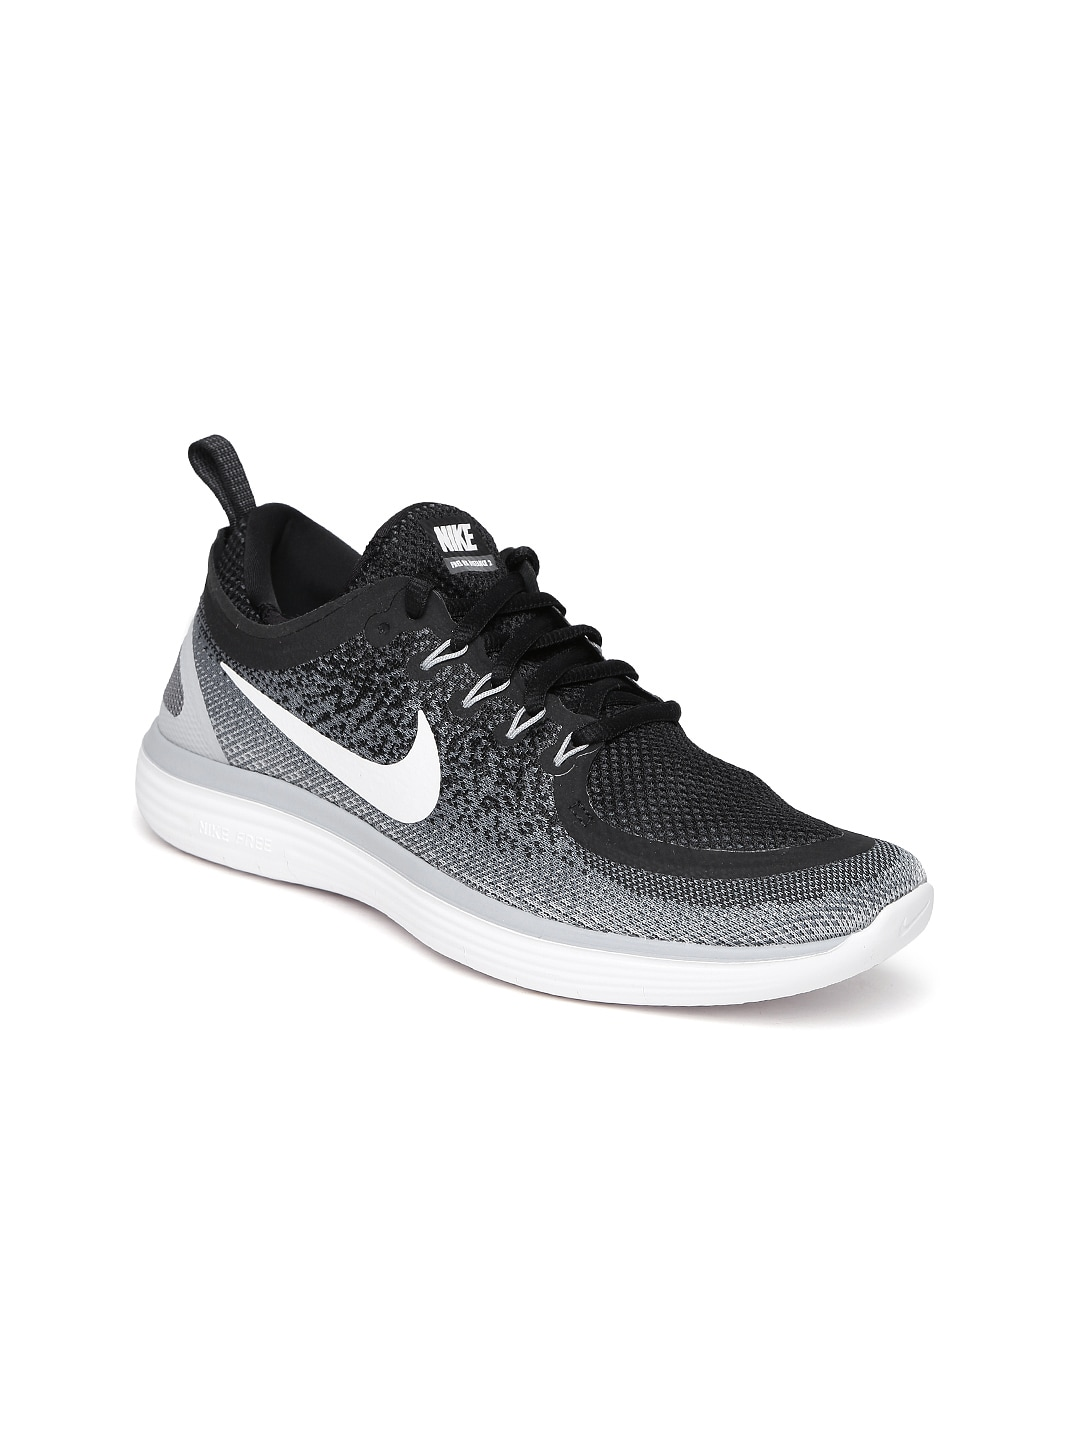 big sale 17d94 10117 Nike Shoes - Buy Nike Shoes for Men  Women Online  Myntra